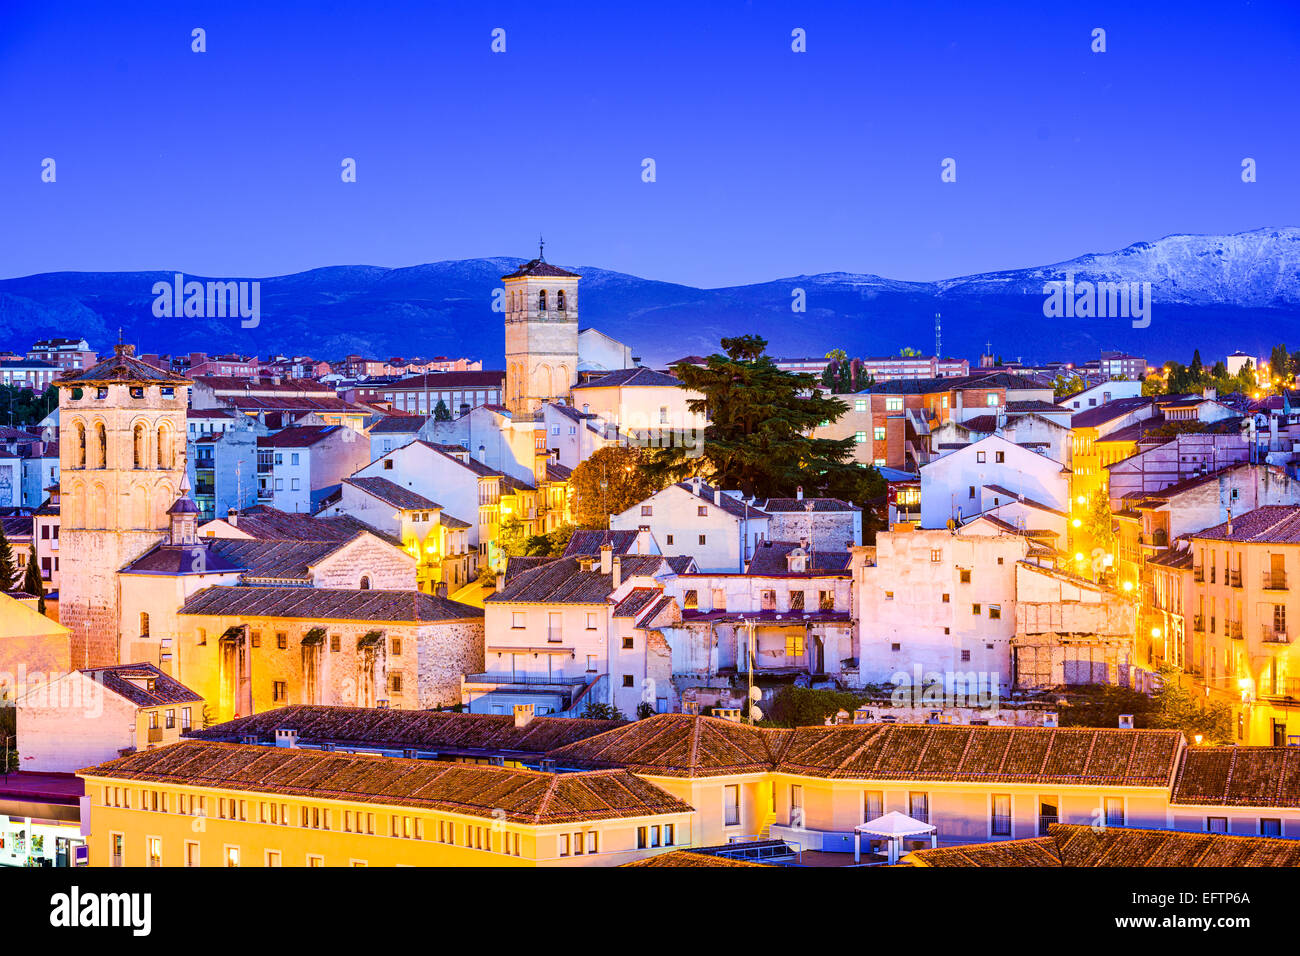 Segovia, Spain old town cityscape. - Stock Image